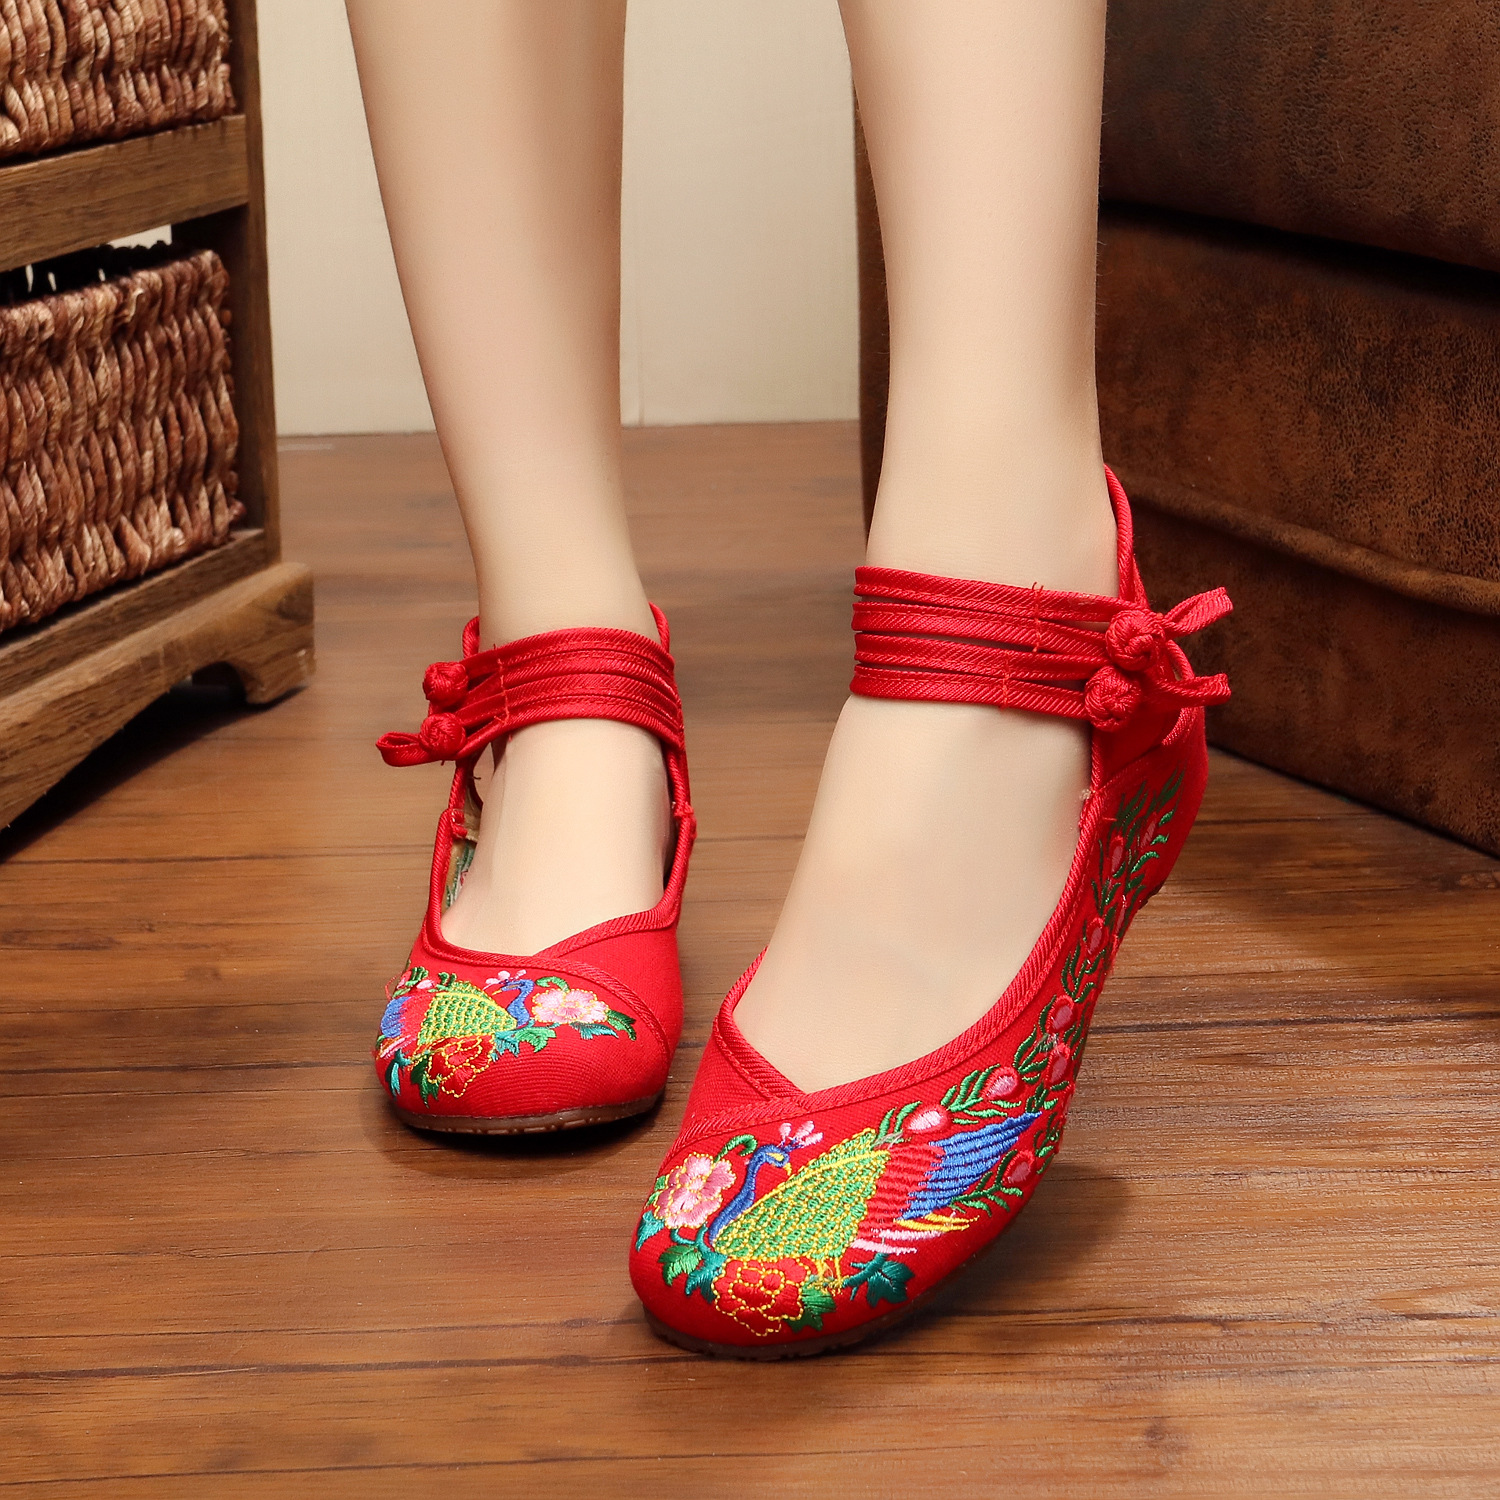 Big Size 35-41 Autumn Fashion Women's Shoes Old Peking Demin Flats,Ladies Peacock Embroidery Soft Sole Casual 3 Colors